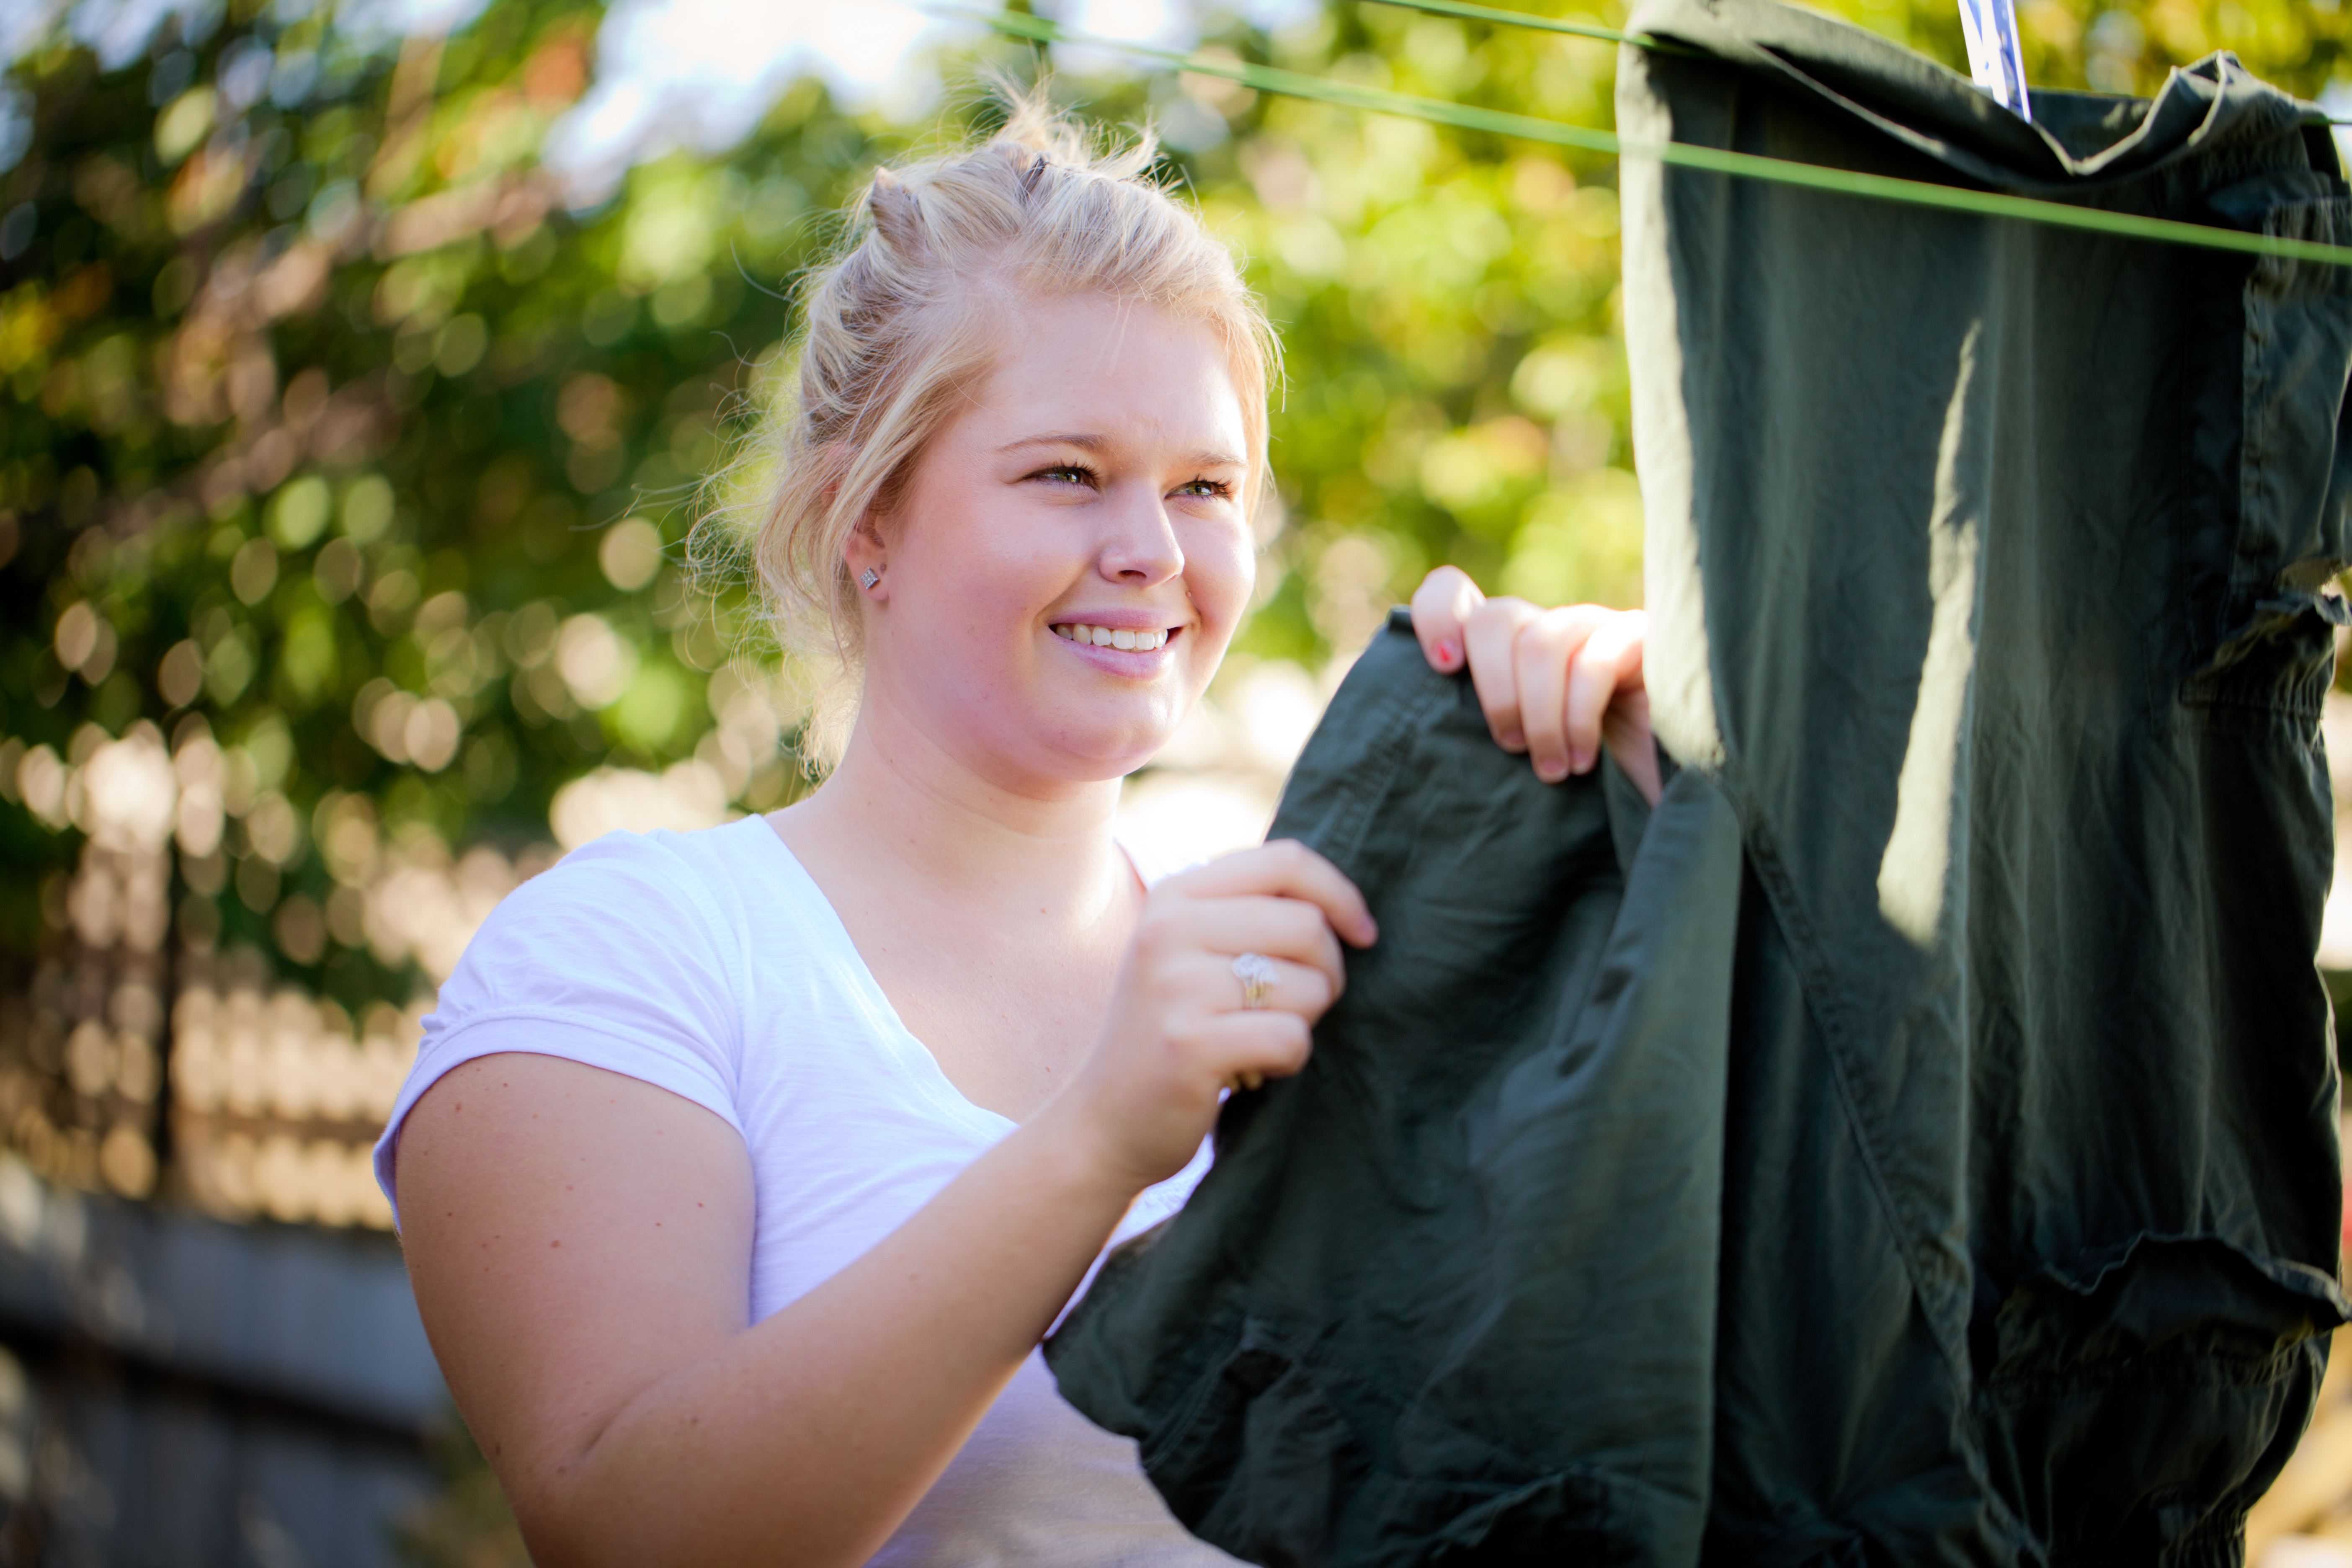 Carer hanging washing on clothes line